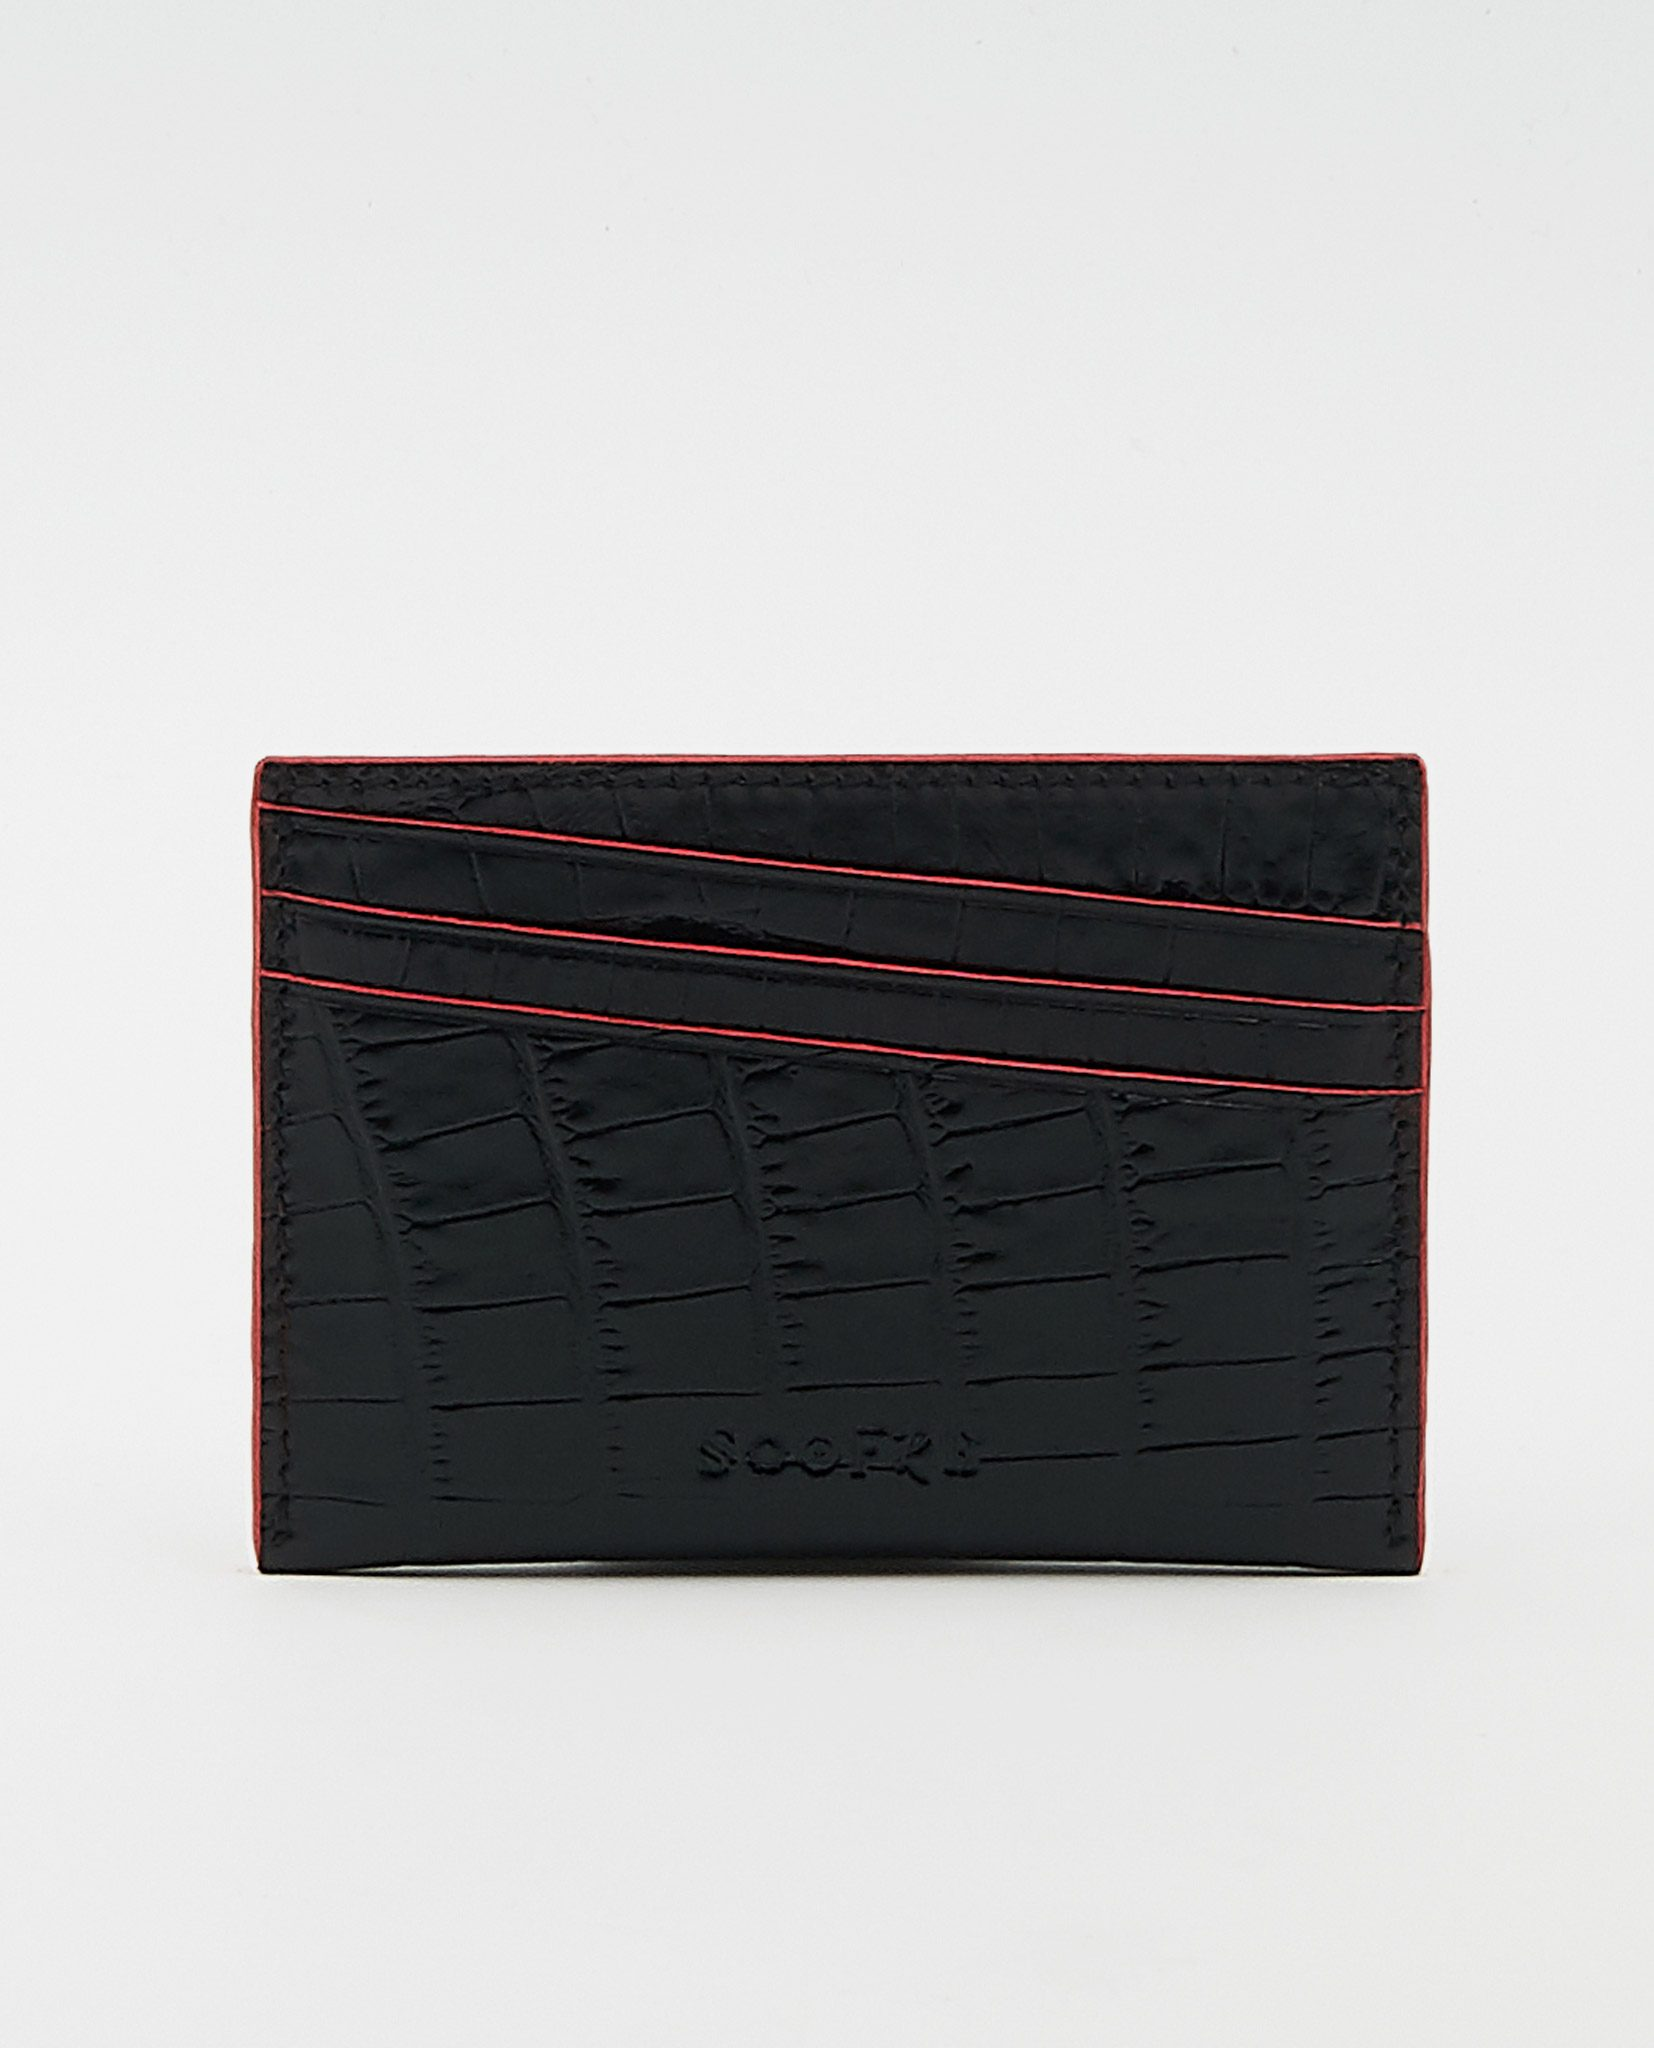 Soofre_Card-Holder_Croco-Black-Red_3